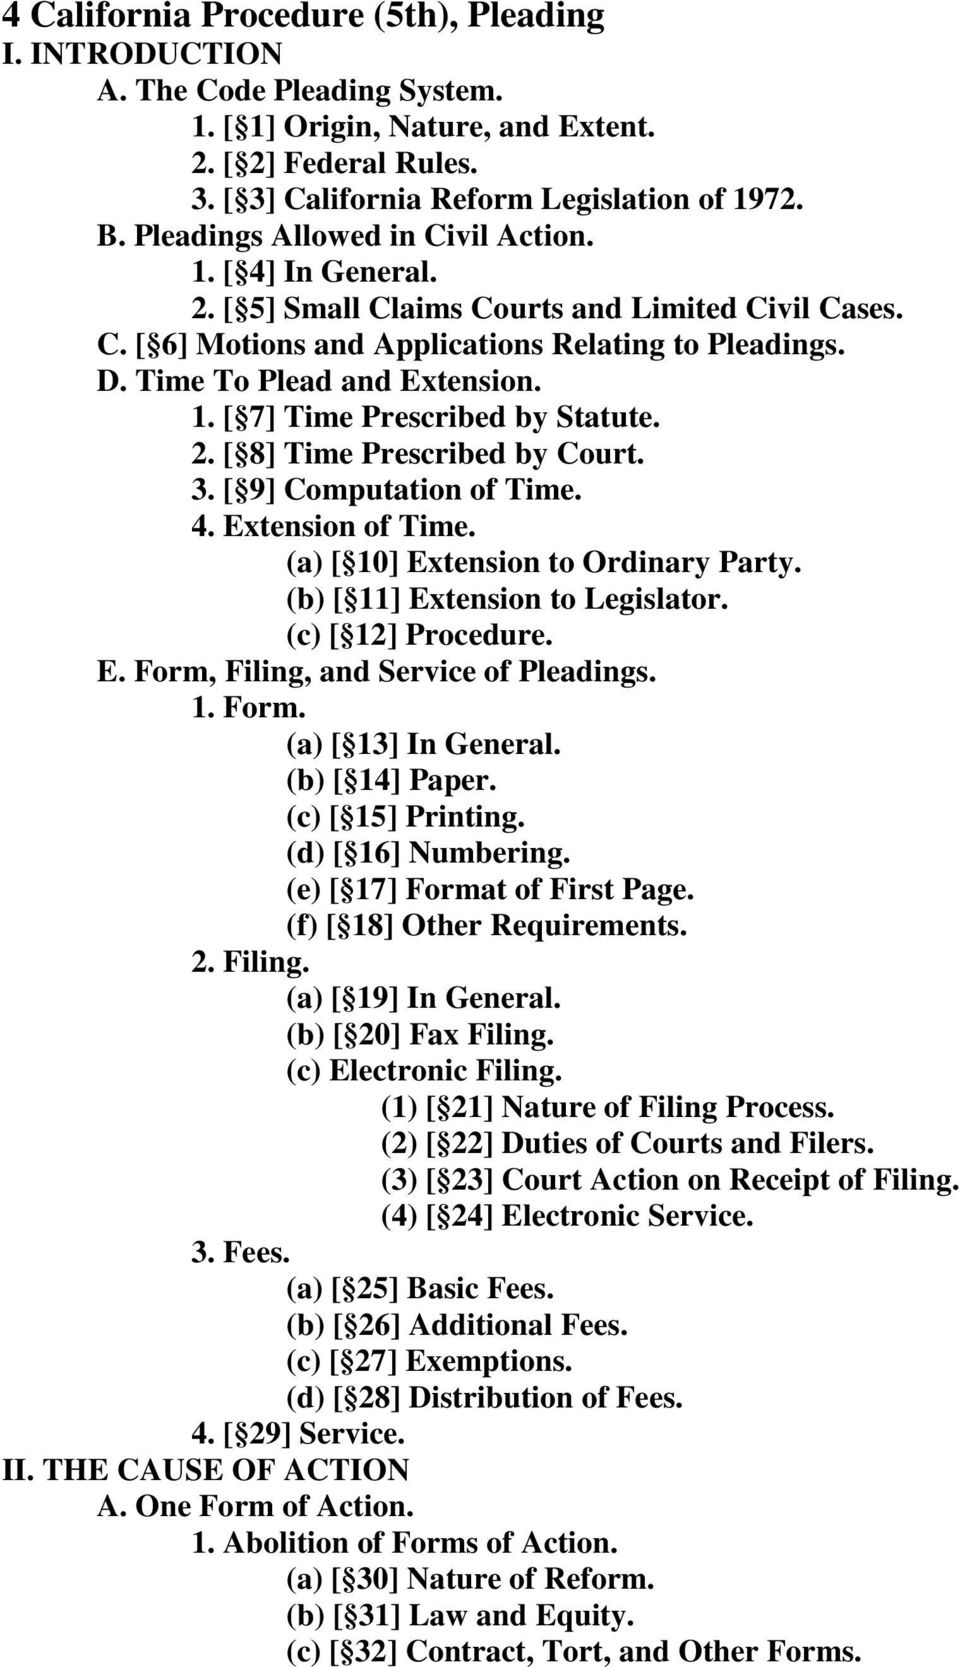 2. [ 8] Time Prescribed by Court. 3. [ 9] Computation of Time. 4. Extension of Time. (a) [ 10] Extension to Ordinary Party. (b) [ 11] Extension to Legislator. (c) [ 12] Procedure. E. Form, Filing, and Service of Pleadings.